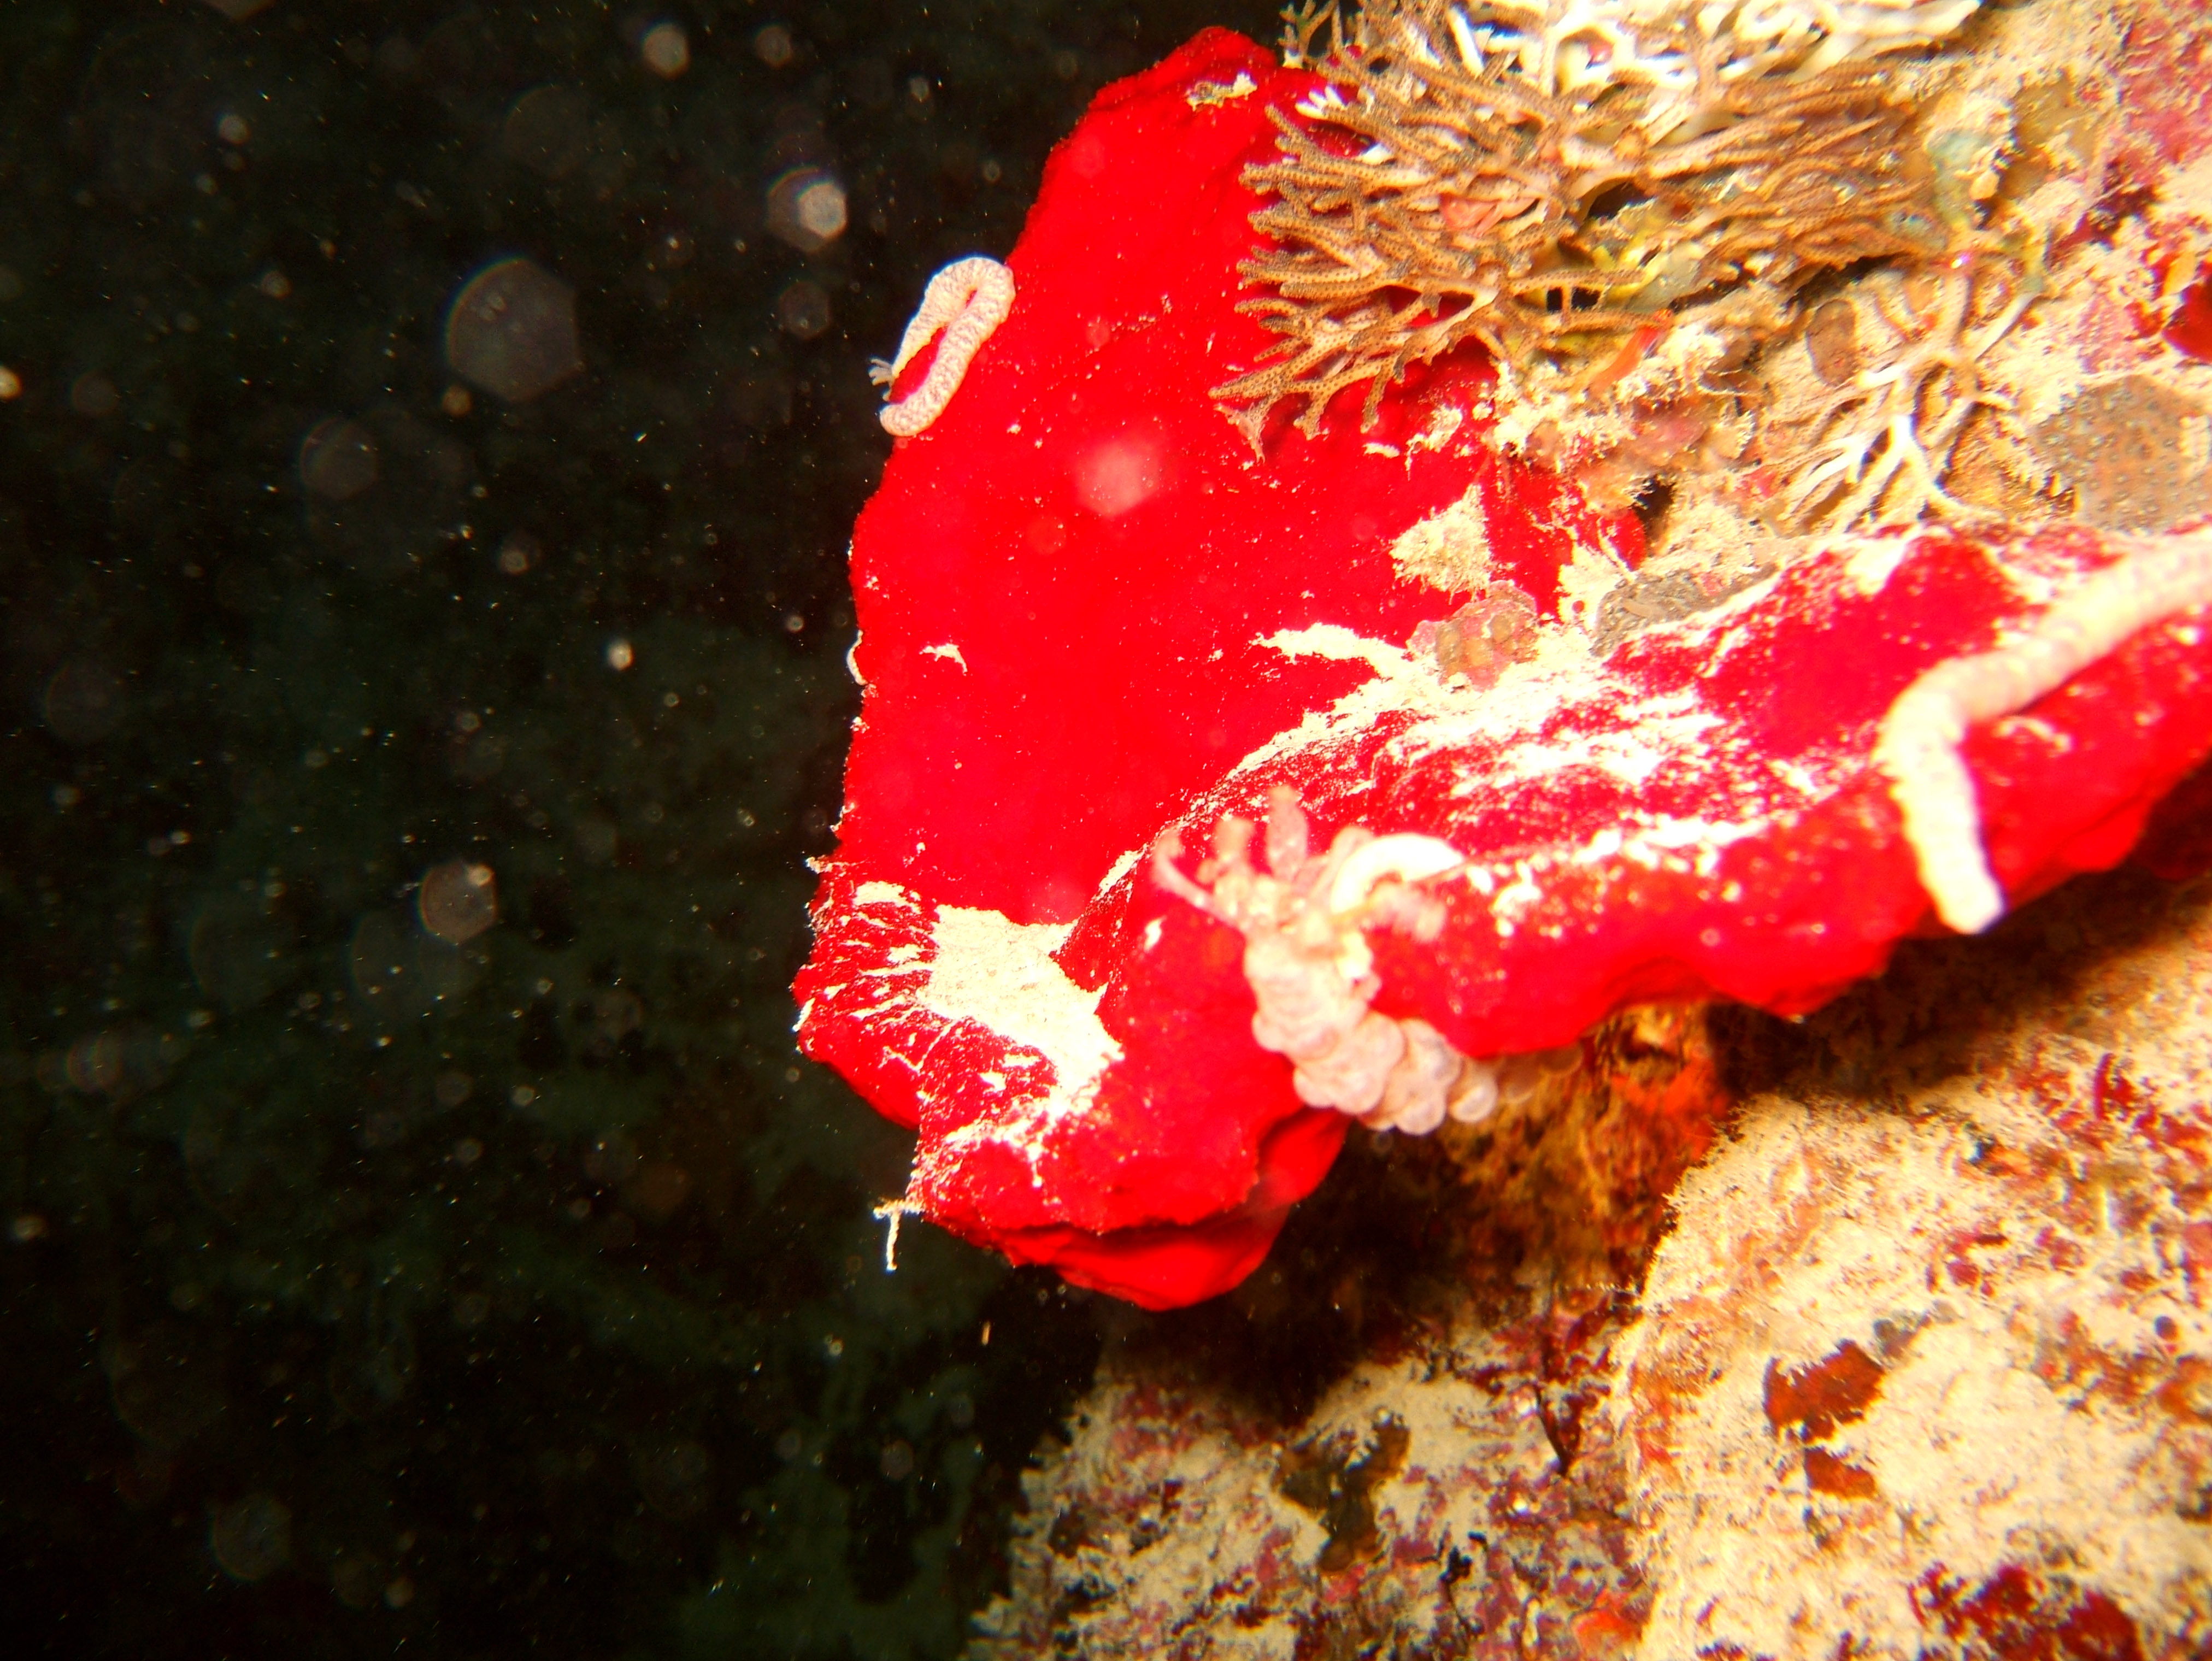 Philippines Cebu Moal Boal 20051226 Dive 2 Talisay Point Night Dive 05